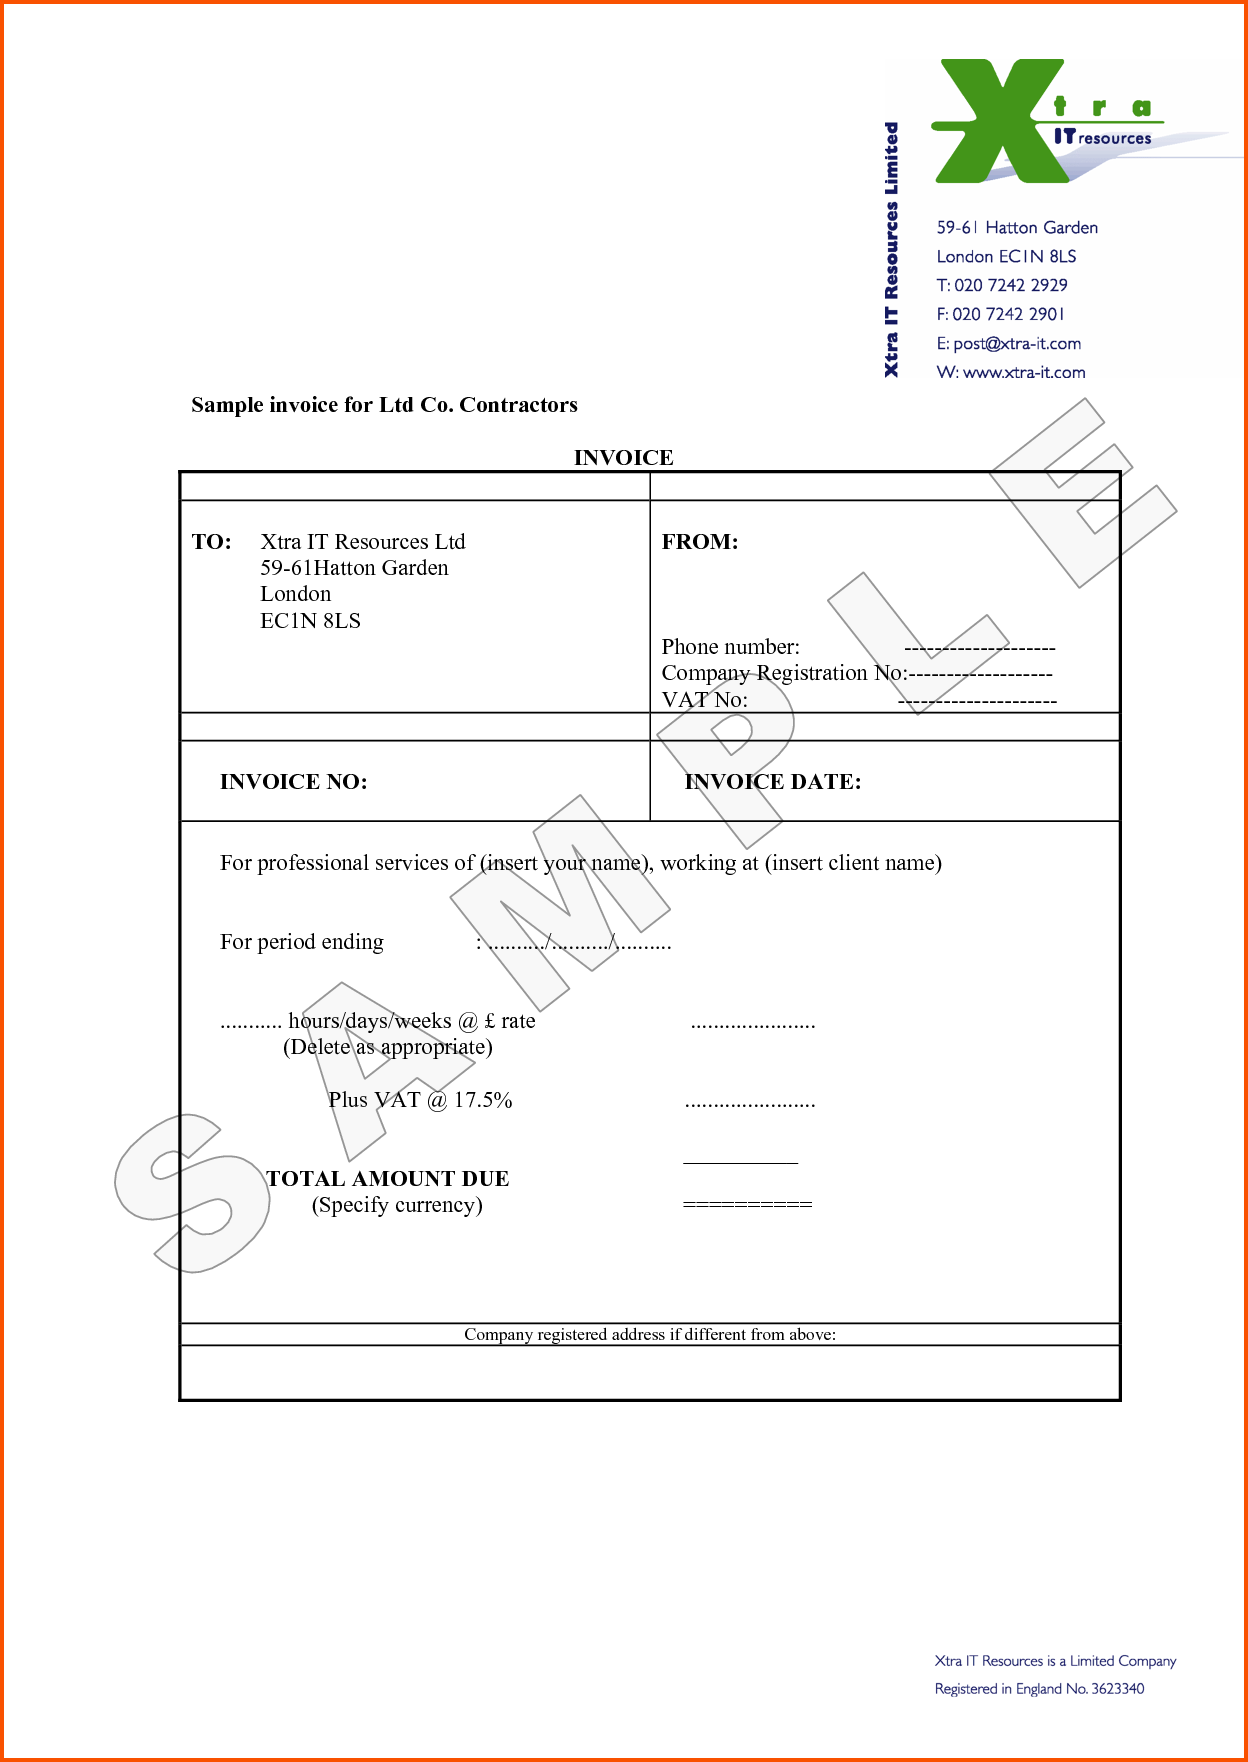 Independent Contractor Invoice Template Trattorialeondoro - Sample independent contractor invoice